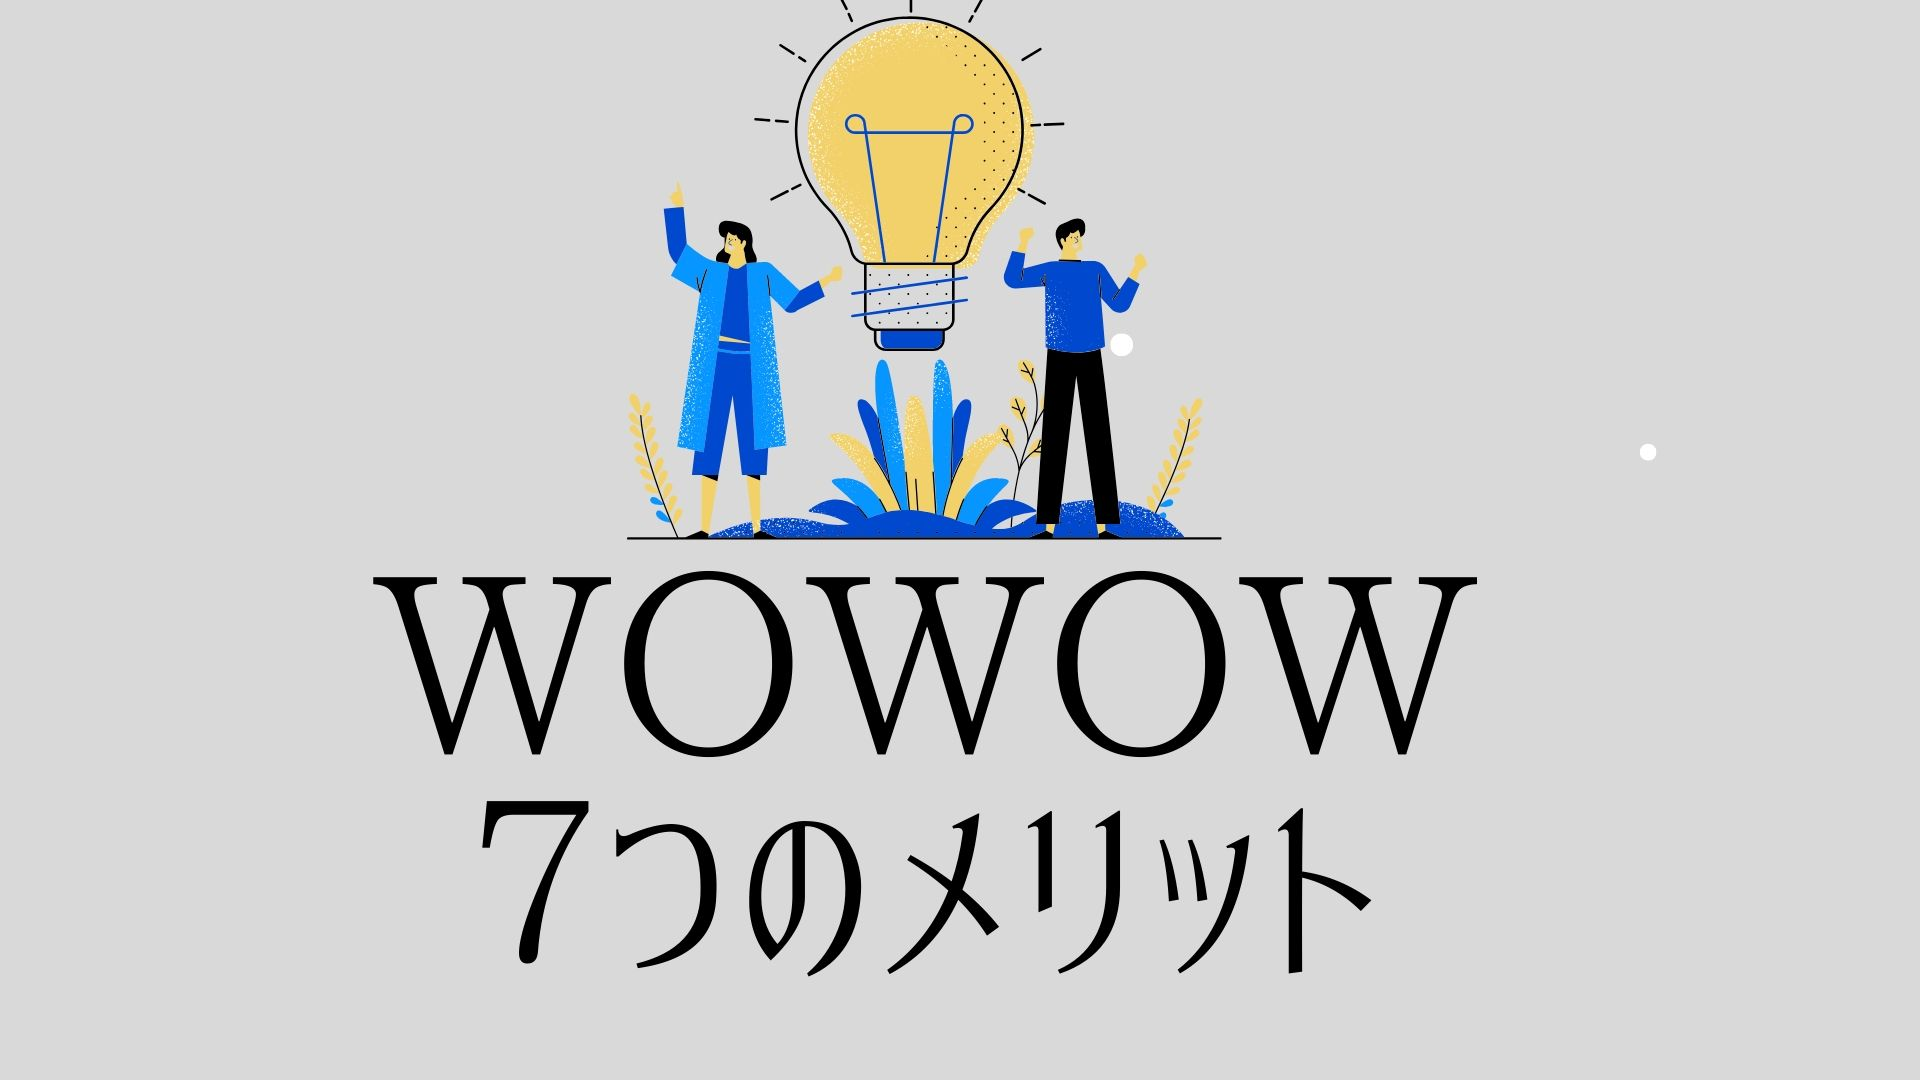 WOWOW 7つのメリット